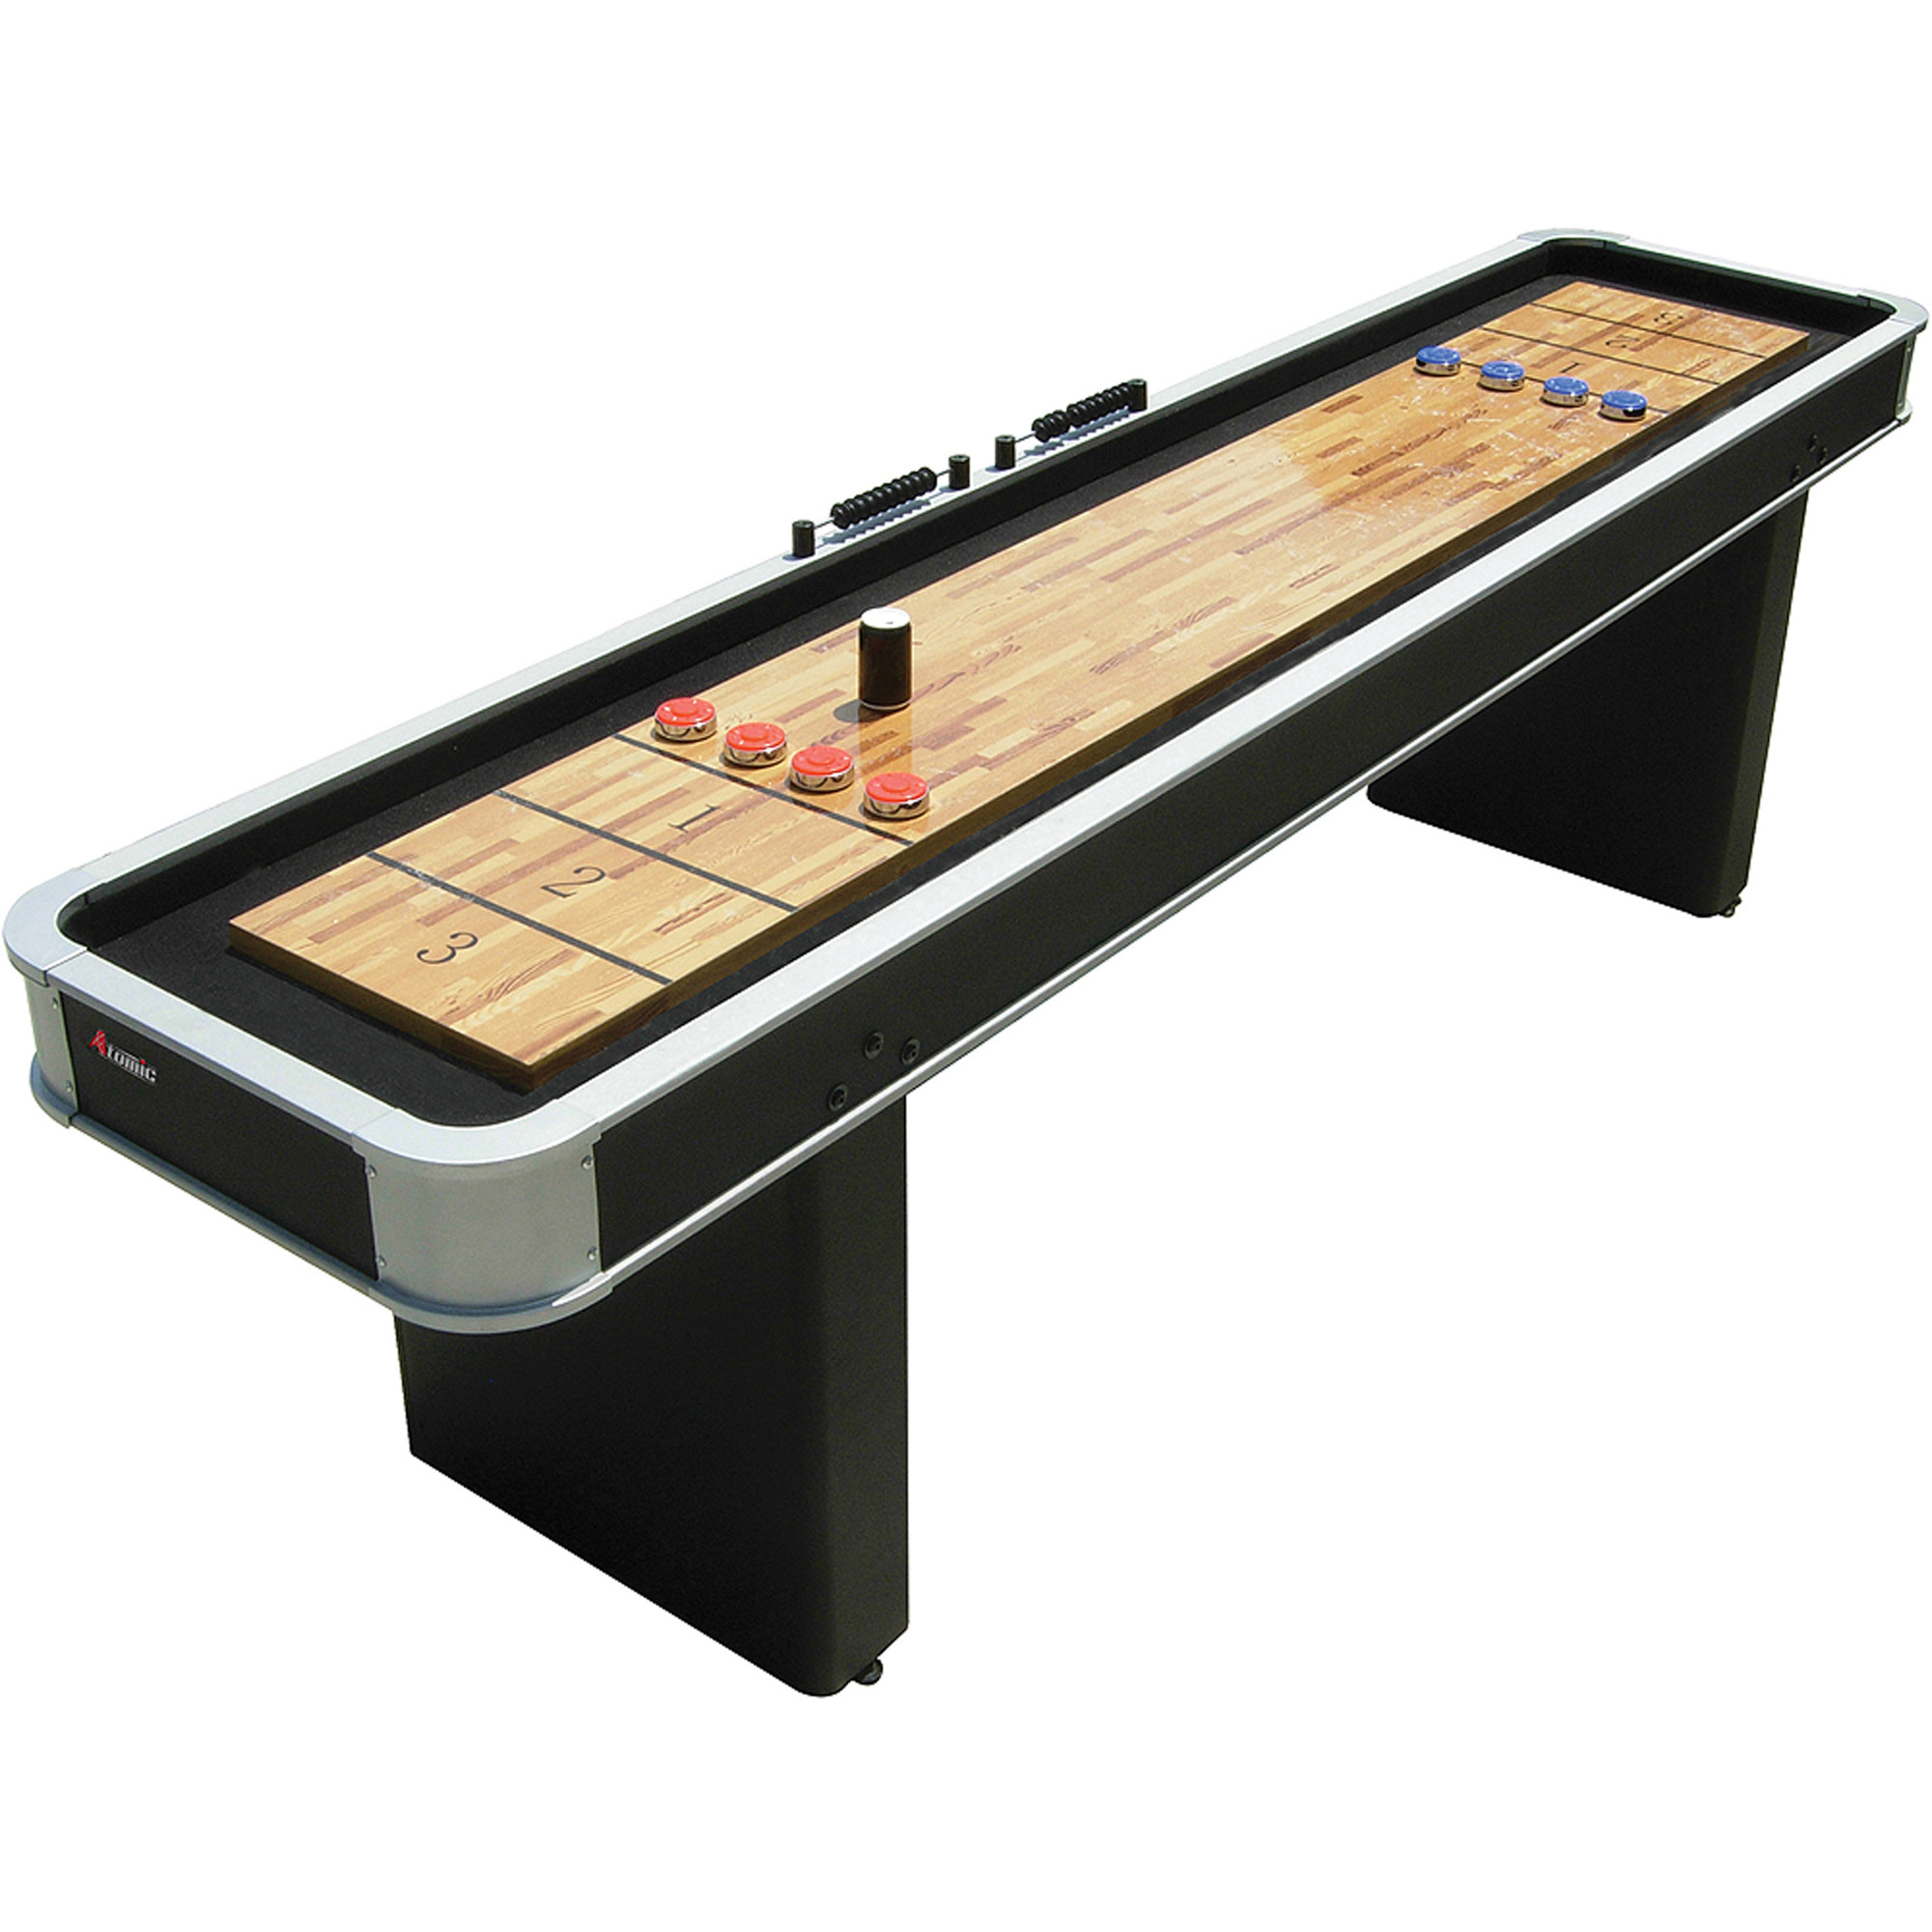 room fullxfull of tables game cabinet table for furniture il bar mancave block rustic billiards shuffleboard gaming thrones listing butcher sale pool